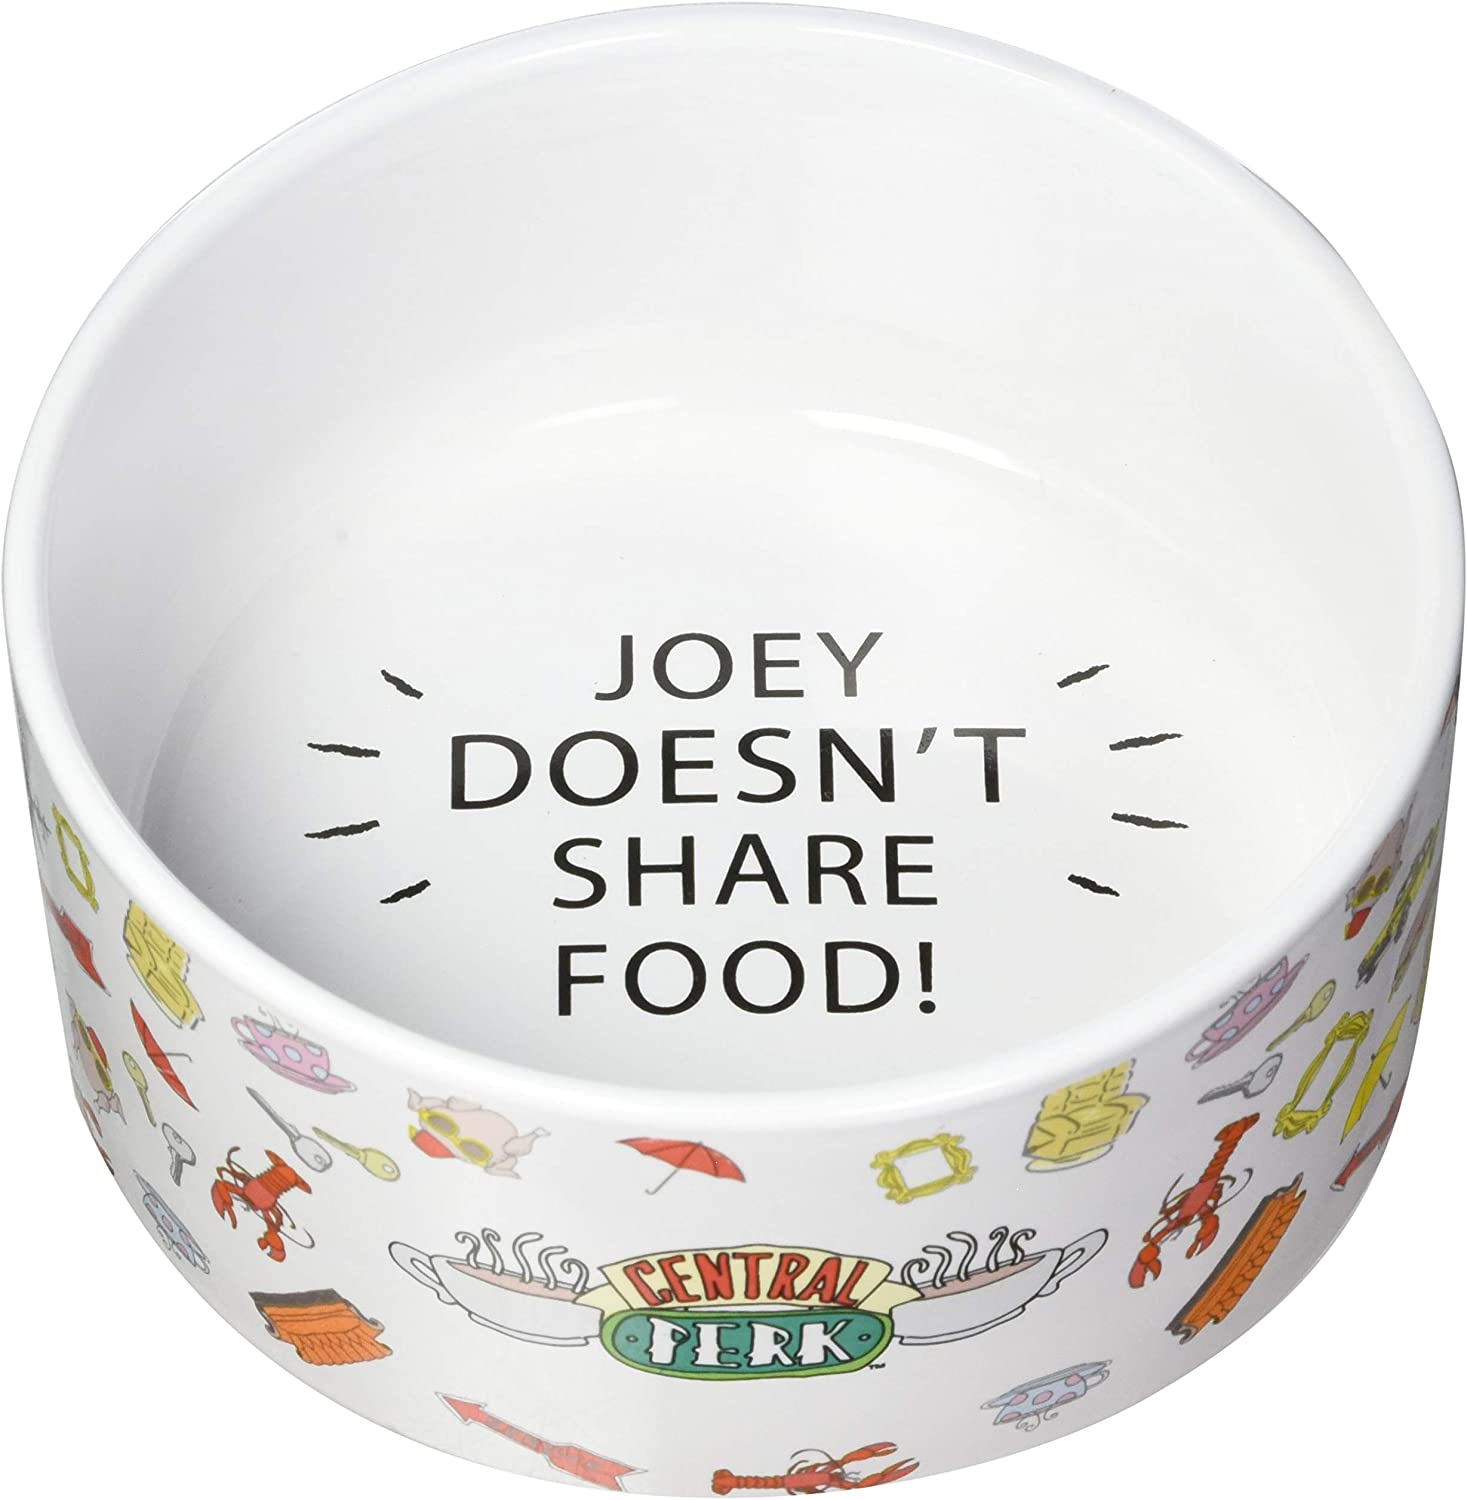 Warner Bros Friends TV Show Joey Doesn't Share Food Ceramic Dog Food Bowl, 6 in | White Dog Bowl, Friends TV Merchandise for Friends Fans | Dog Water Bowl or Dog Food Bowl for Wet or Dry Food